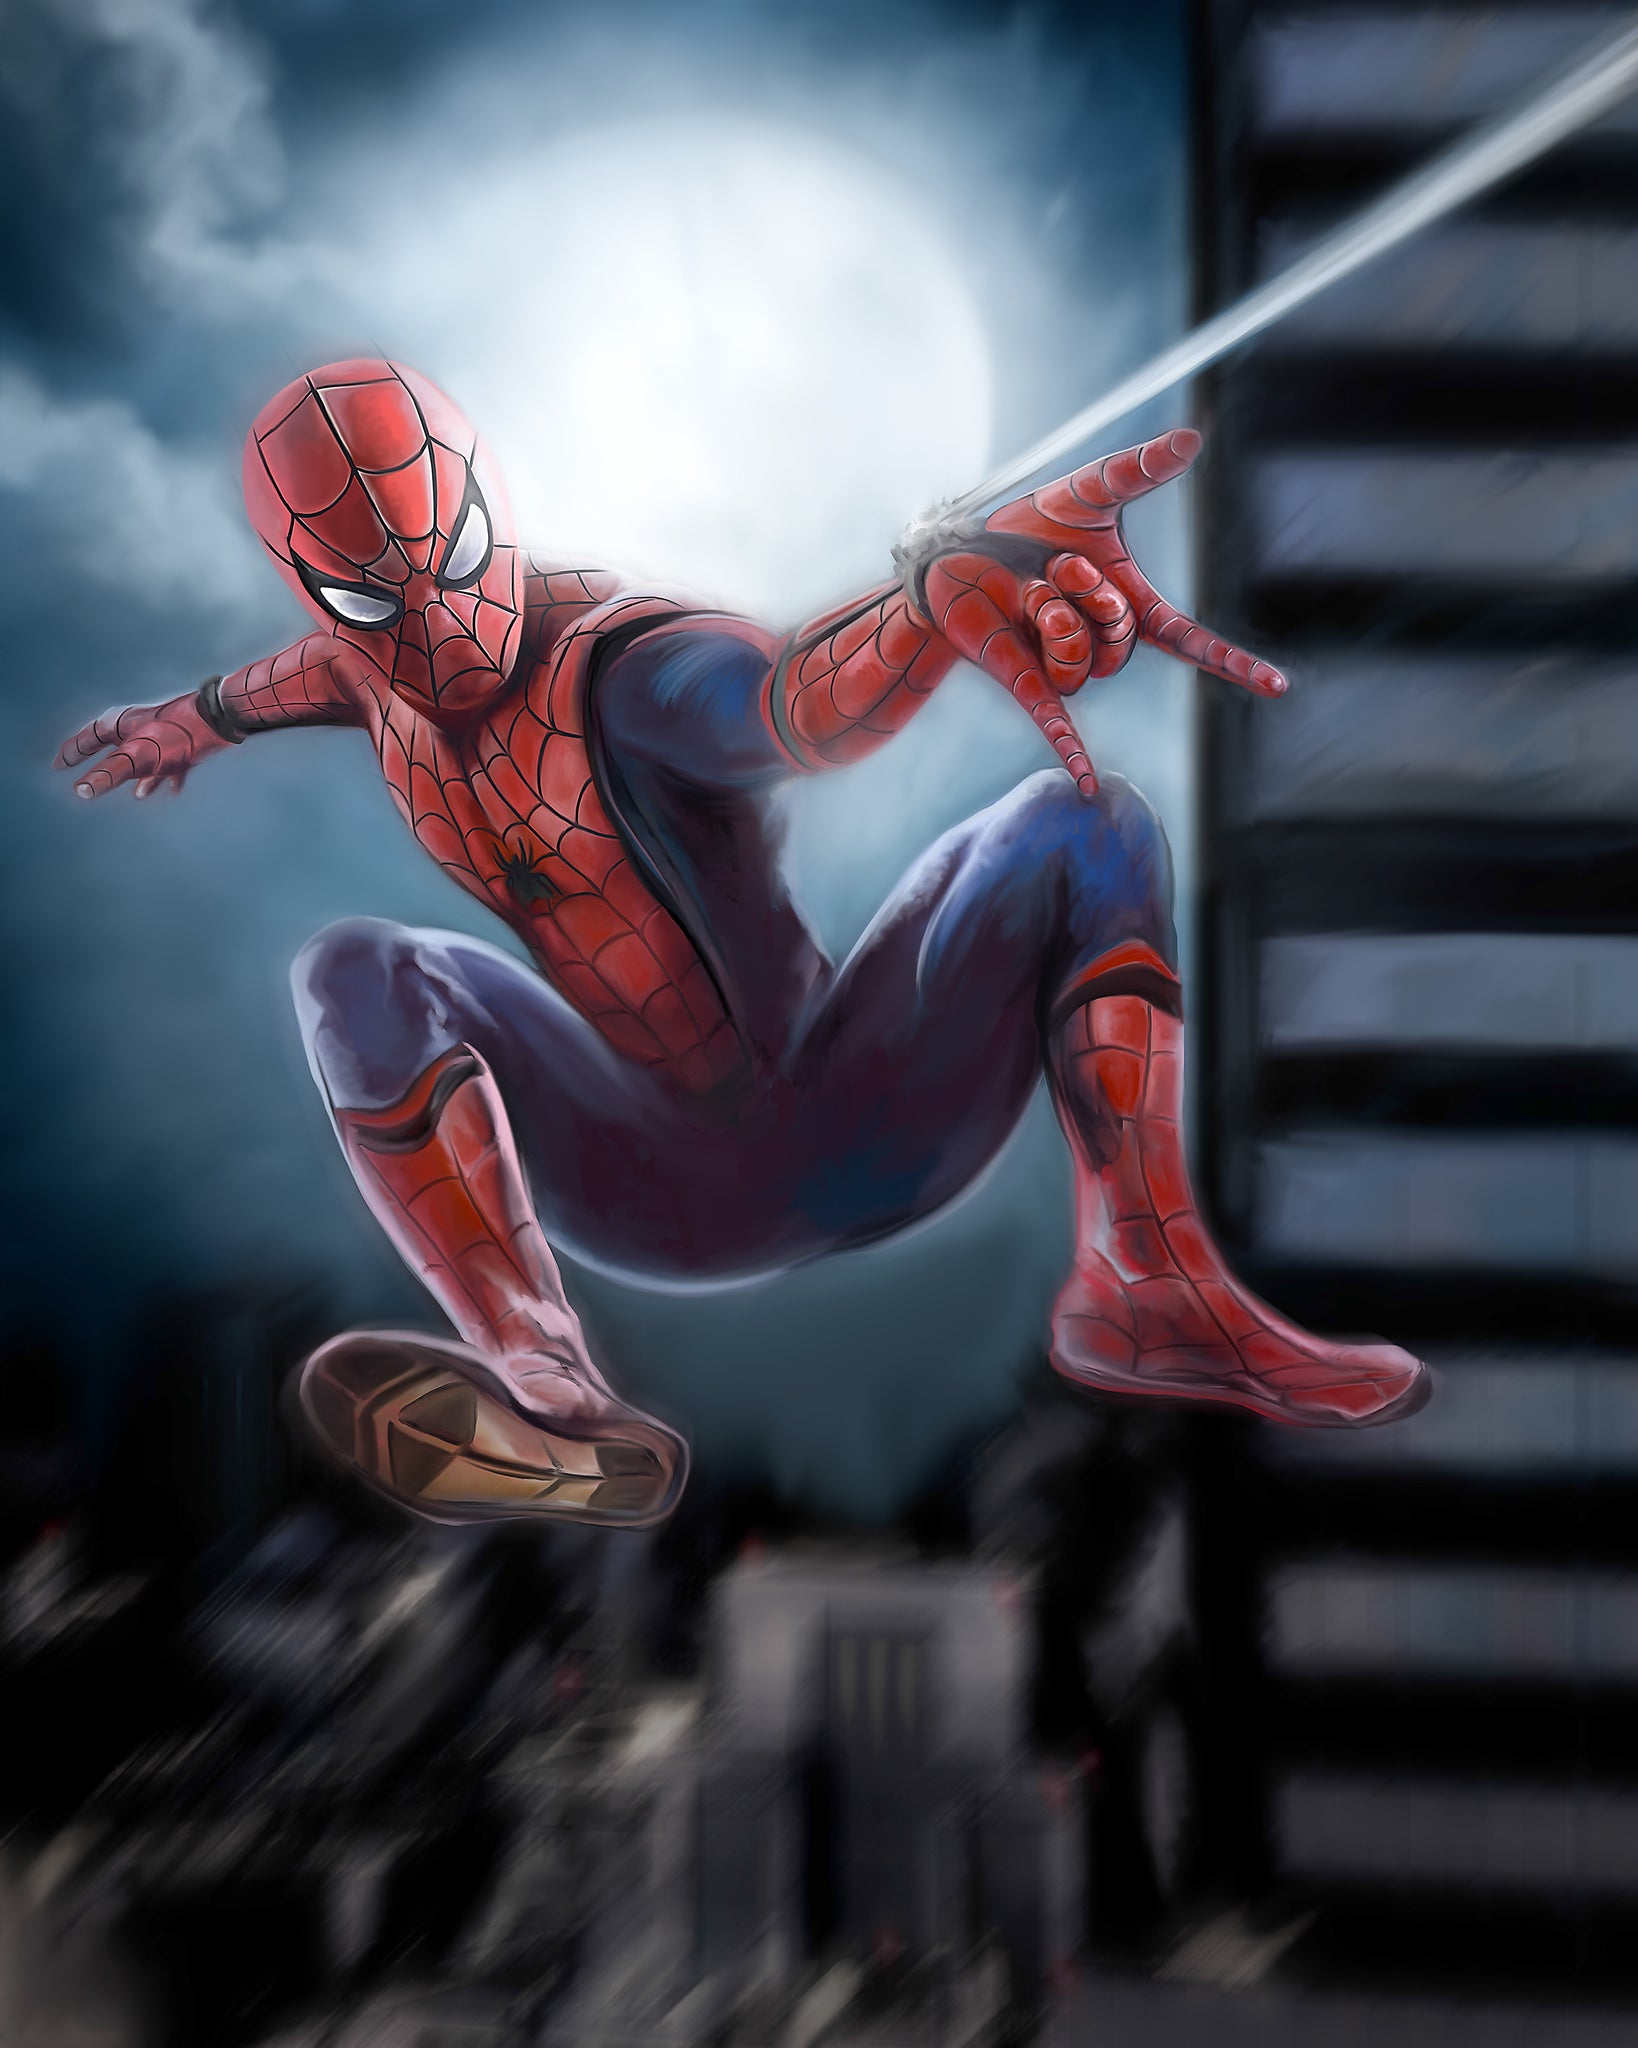 Spiderman Pictures To Print